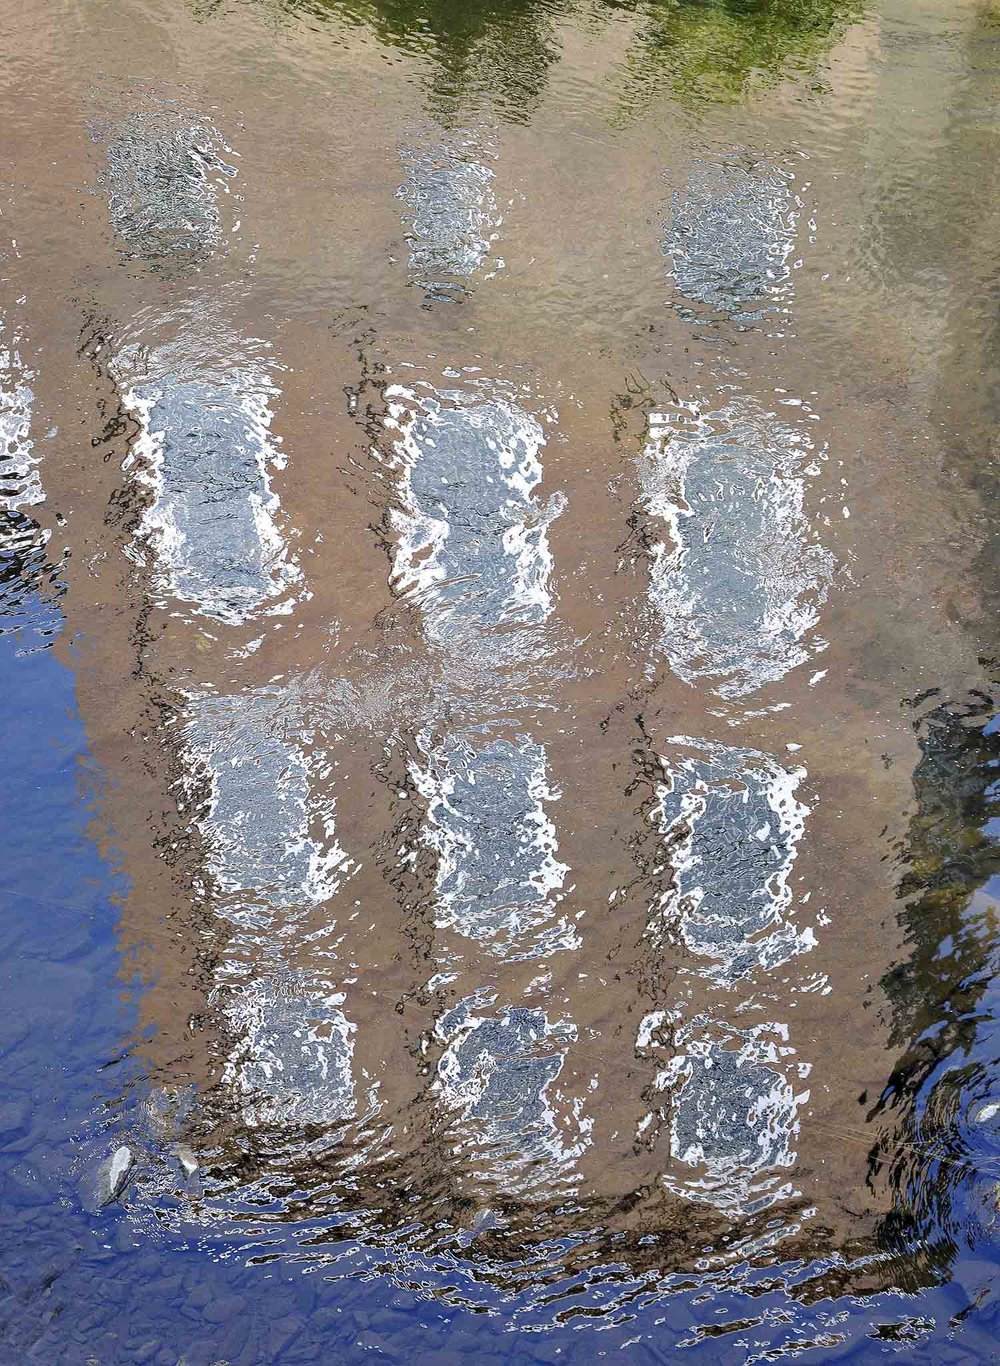 mill-number-1-reflection.jpg